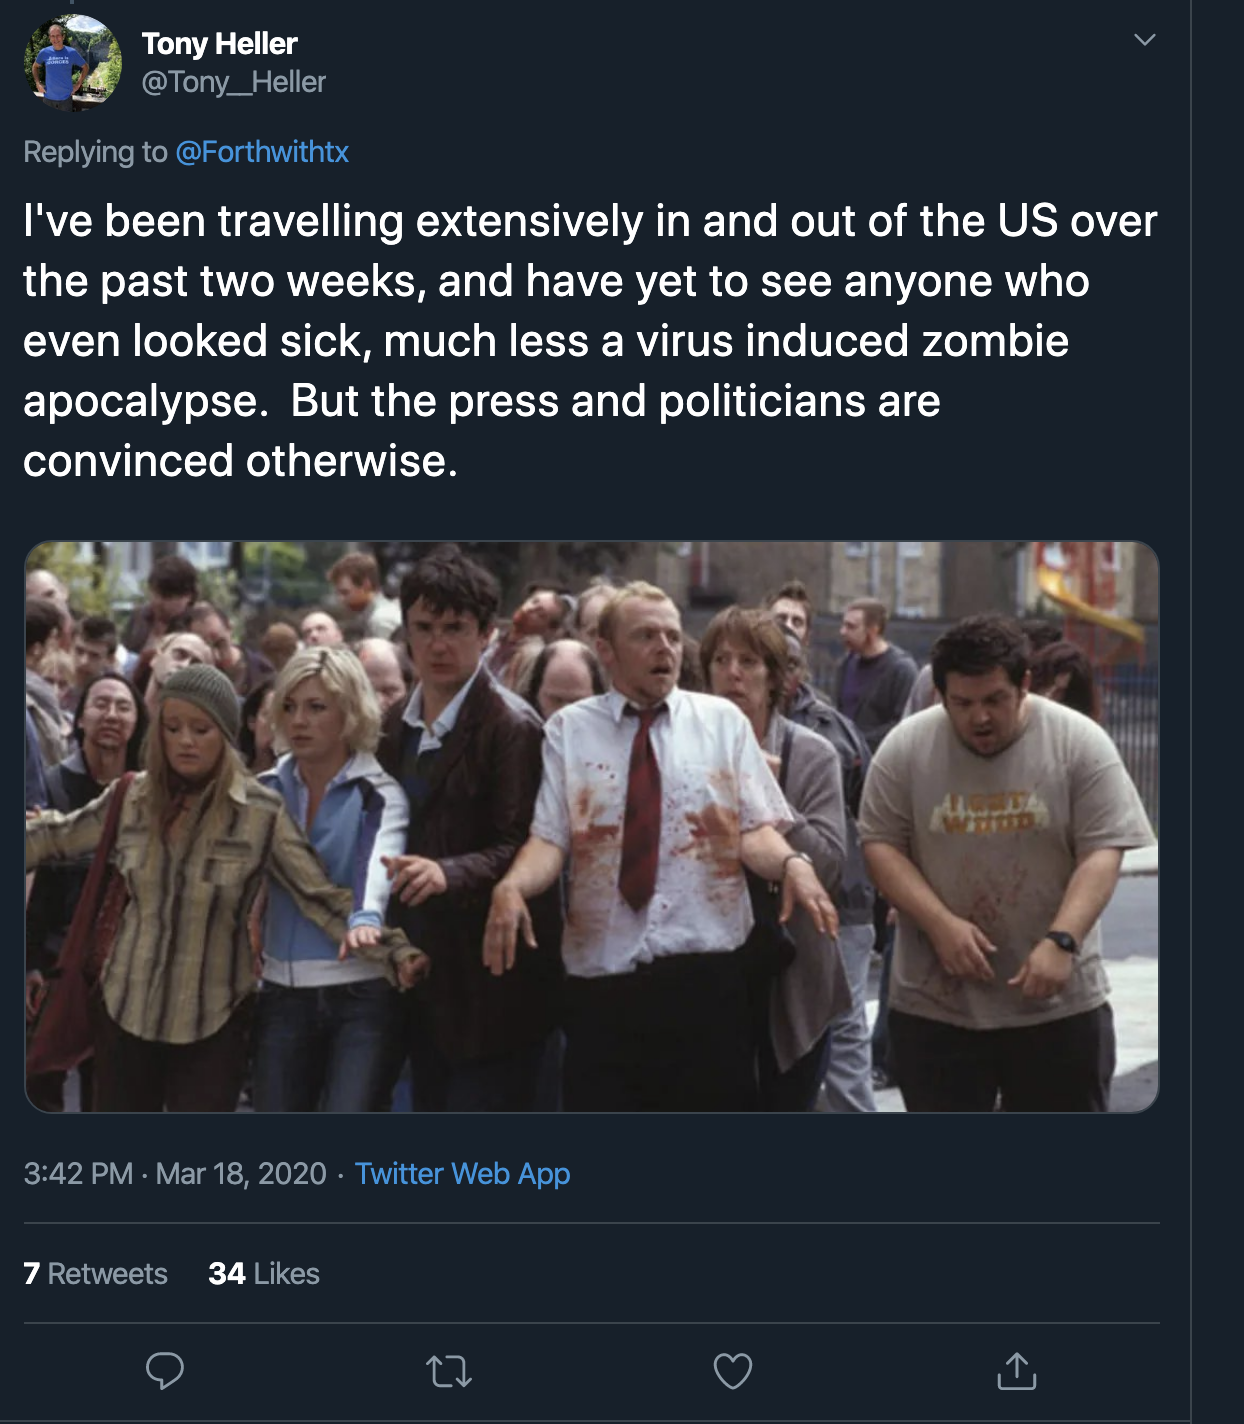 I've been travelling extensively in and out of the US over the past two weeks, and have yet to see anyone who even looked sick, much less a virus induced zombie apocalypse.  But the press and politicians are convinced otherwise.